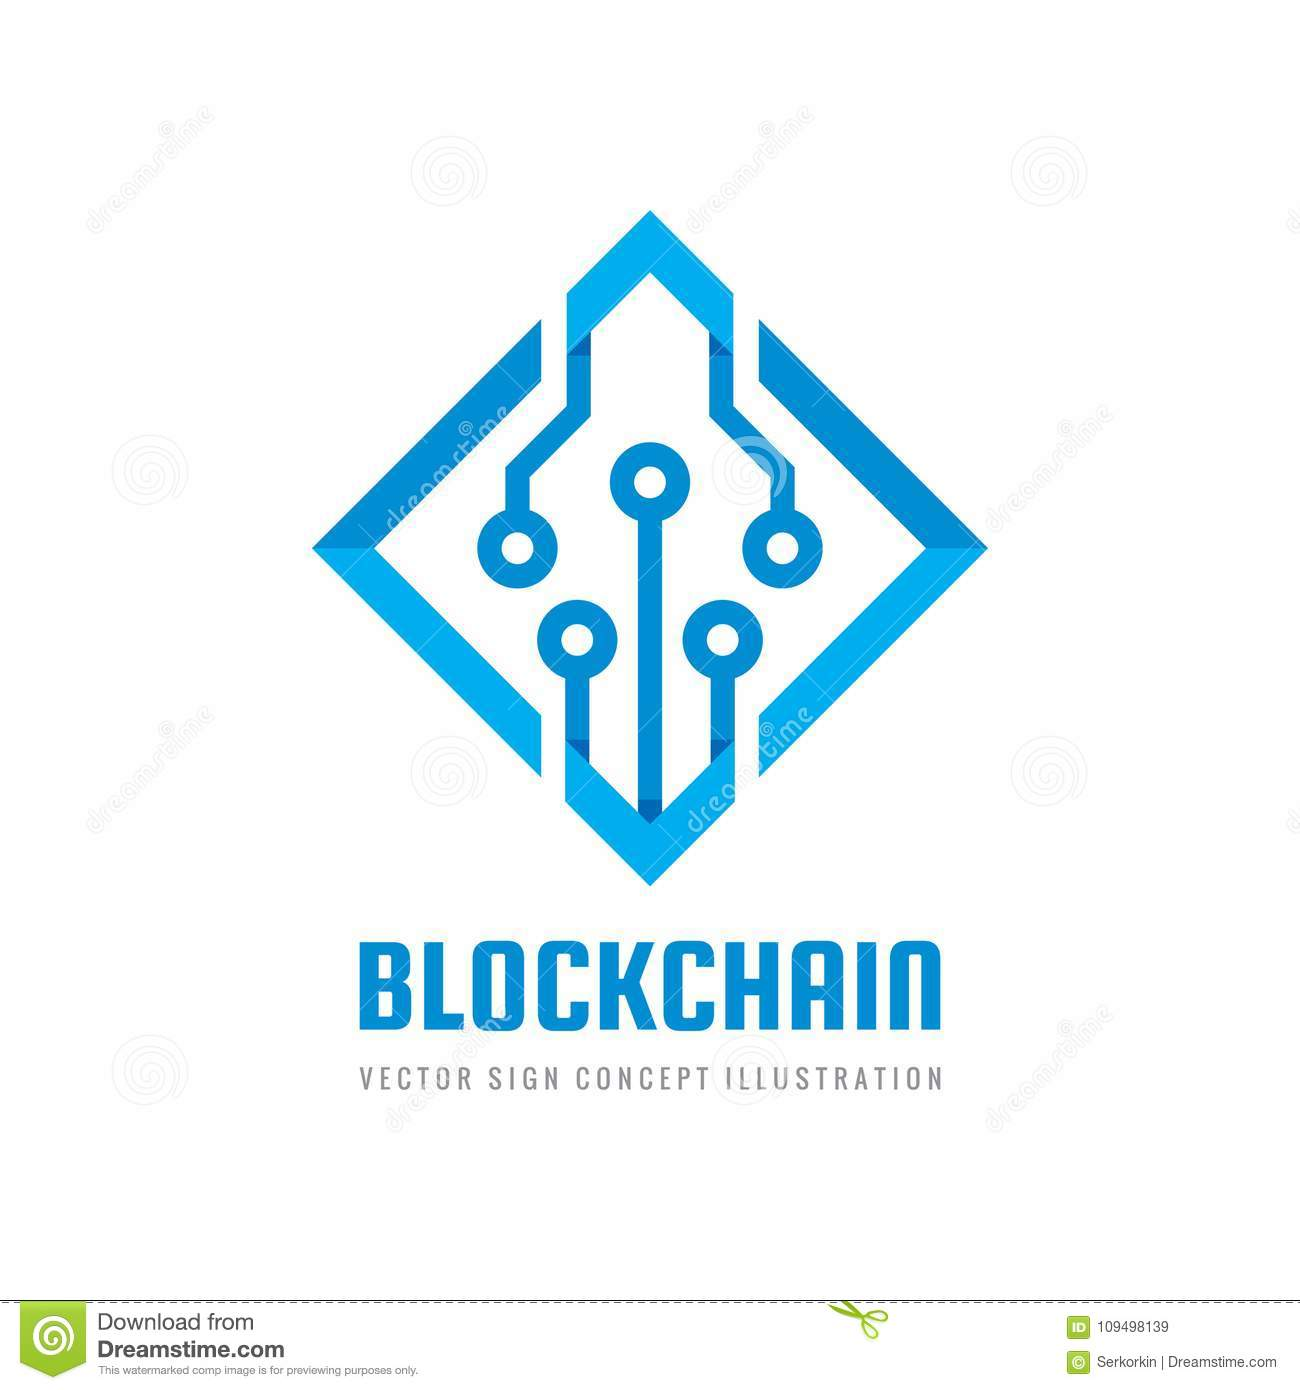 Blockchain - concept business logo template vector illustration. Future technology creative sign. Digital cryptocurrency icon.